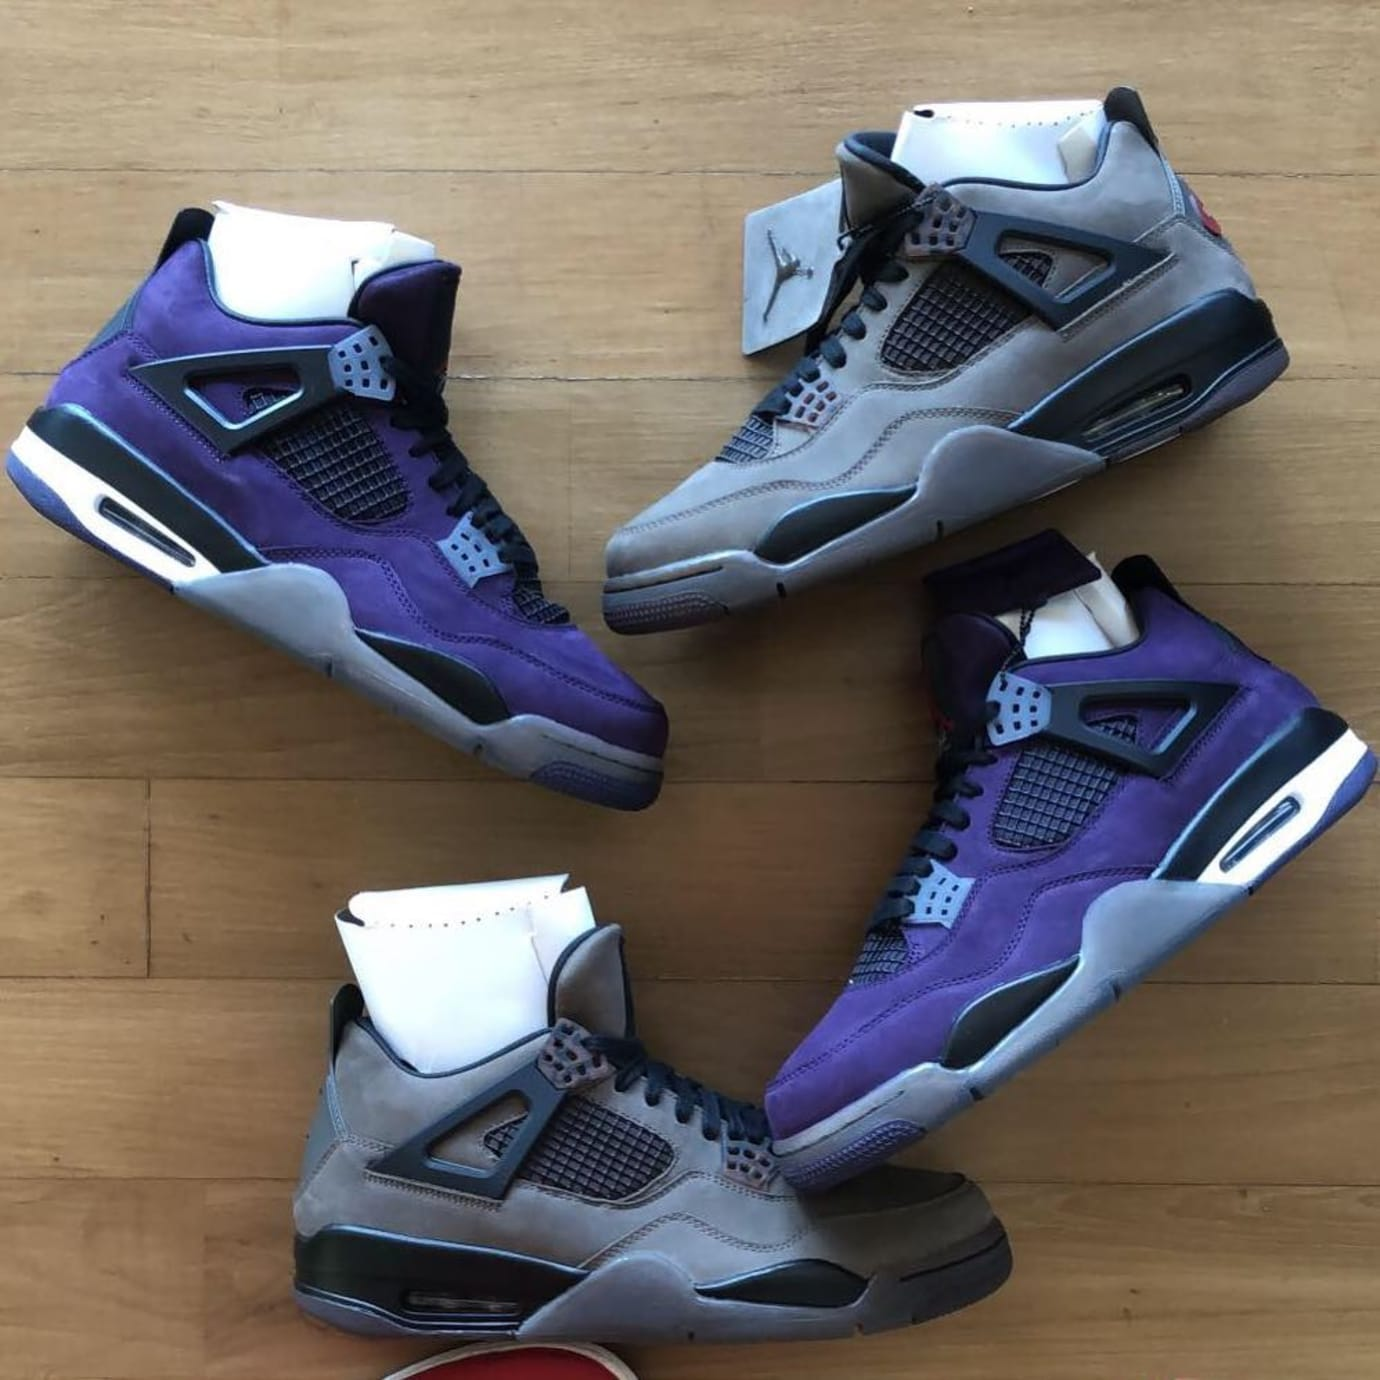 7d7a3f4fdfaece Image via dpthekid · air-jordan-4-travis-scott-purple-olive-don-